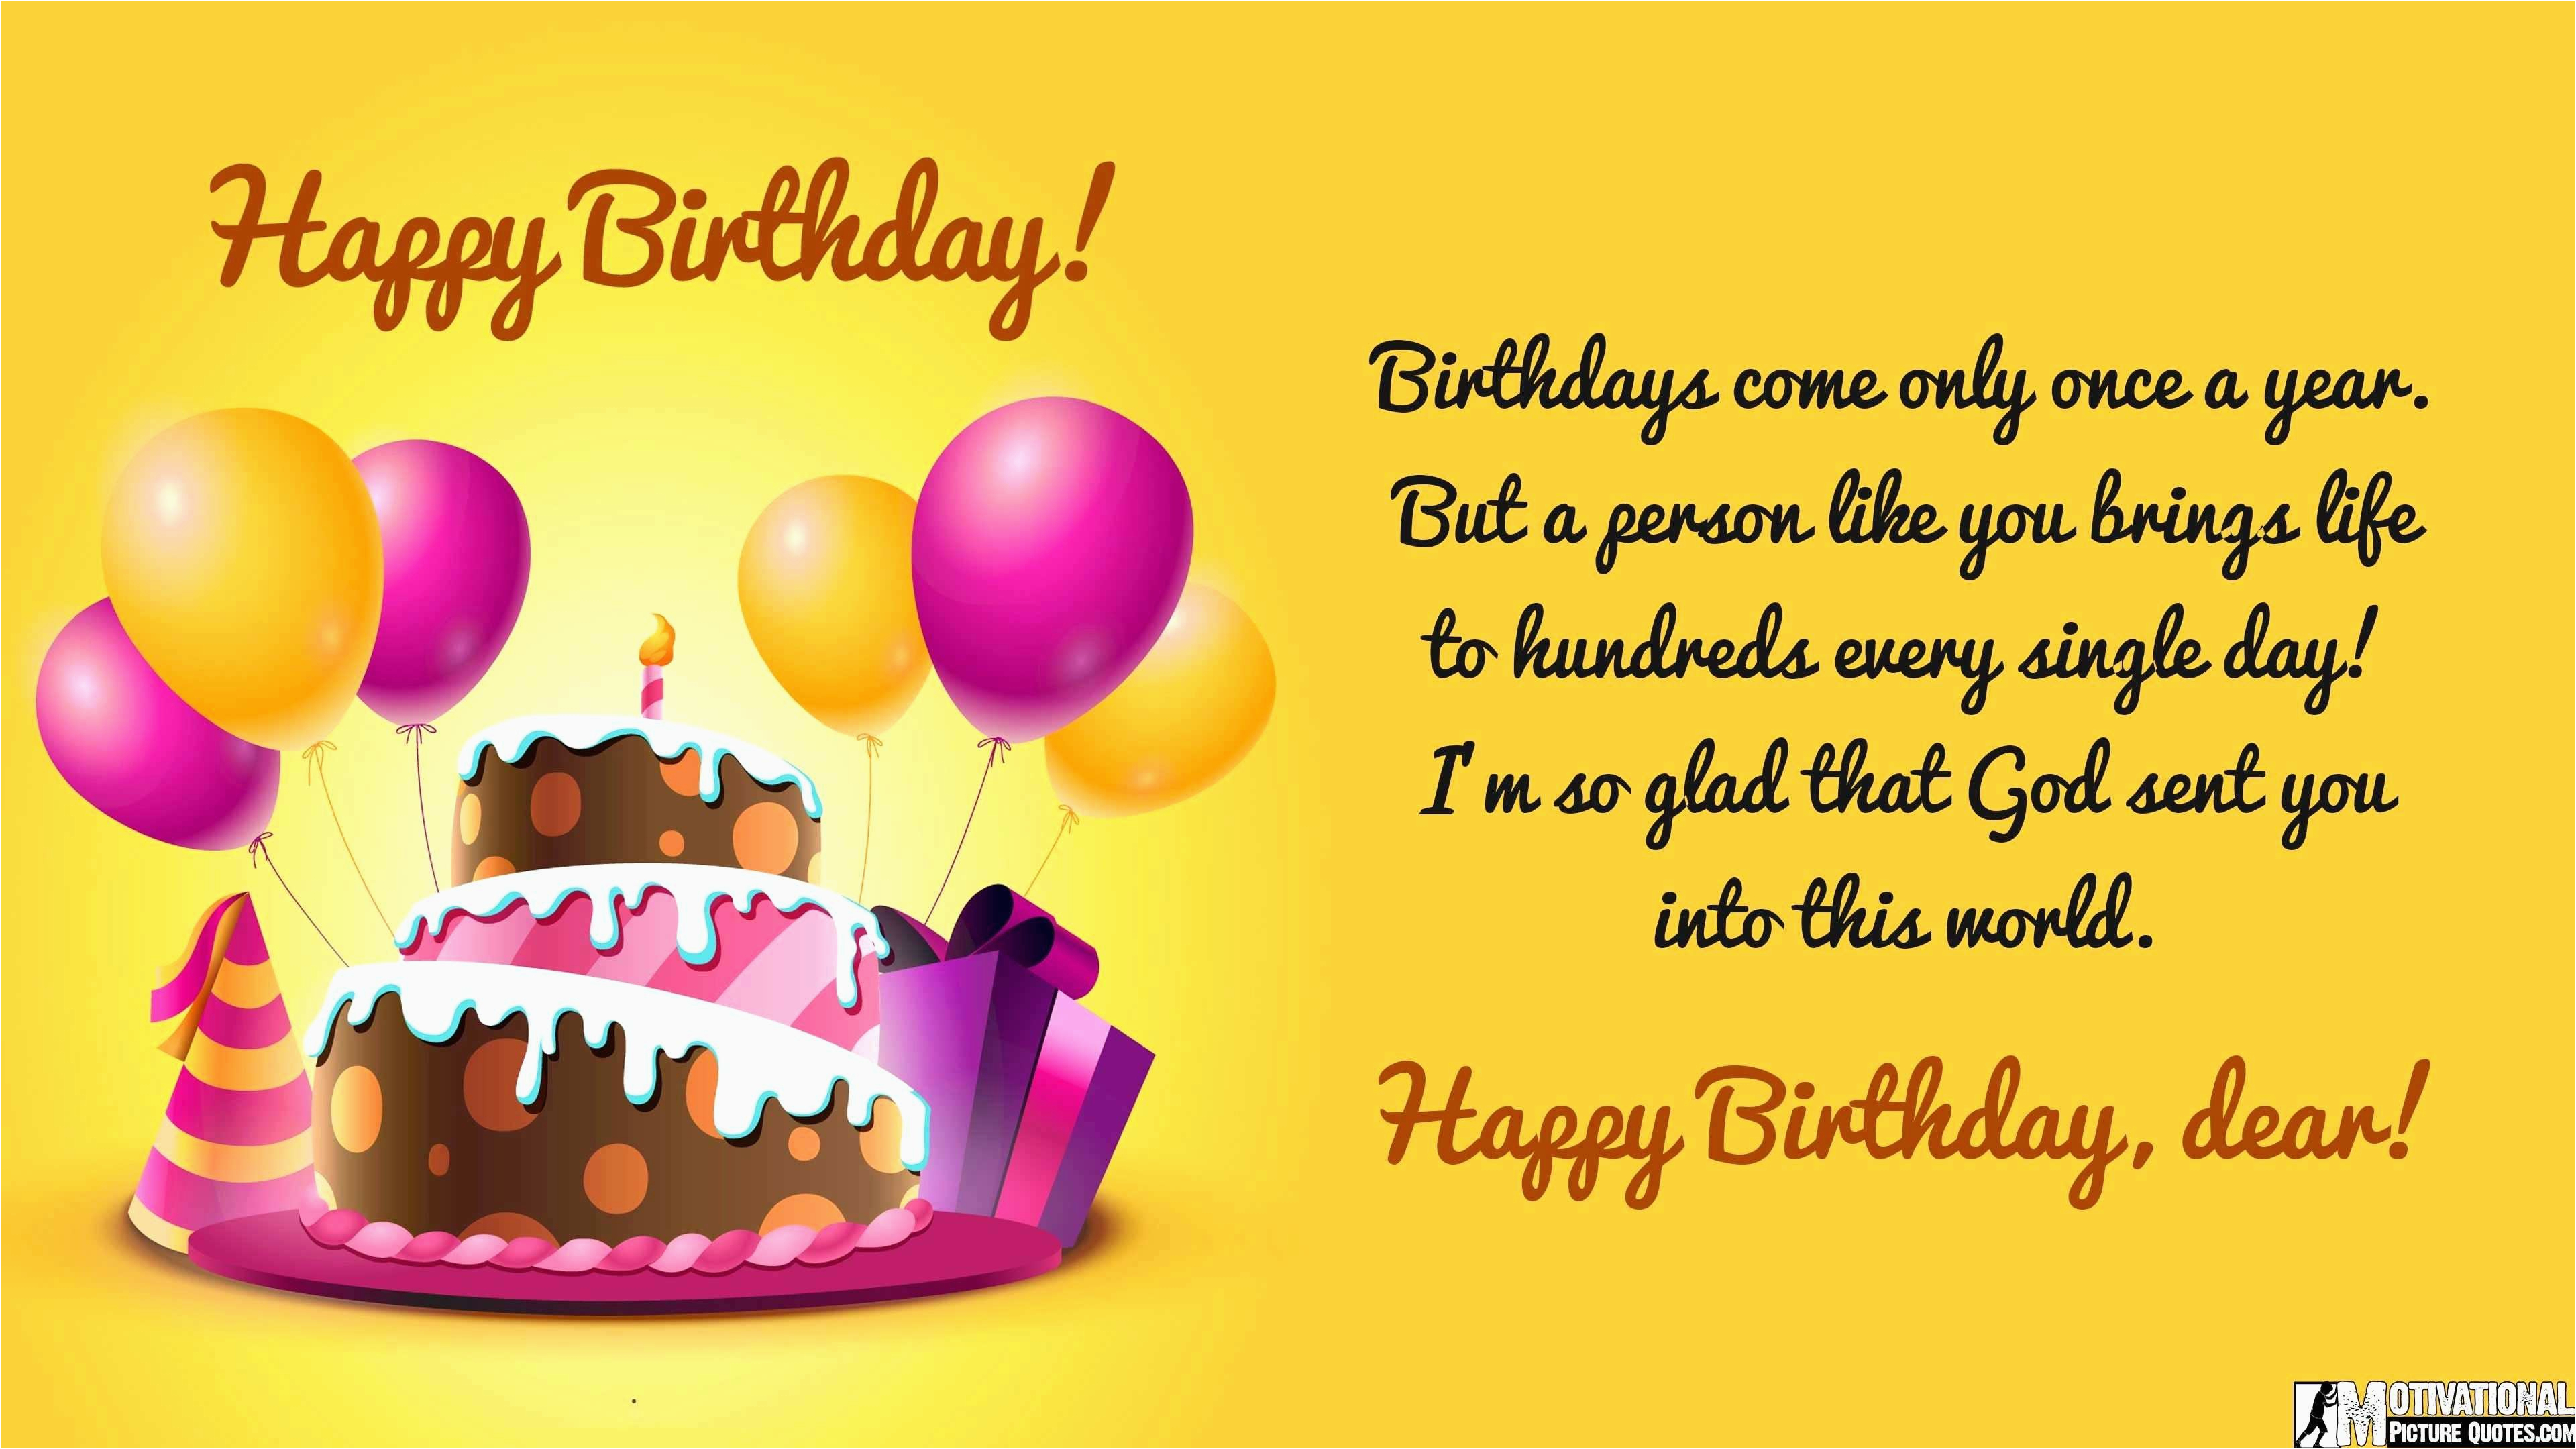 happy birthday cards spanish beautiful quotes for sister card ideas fd983d